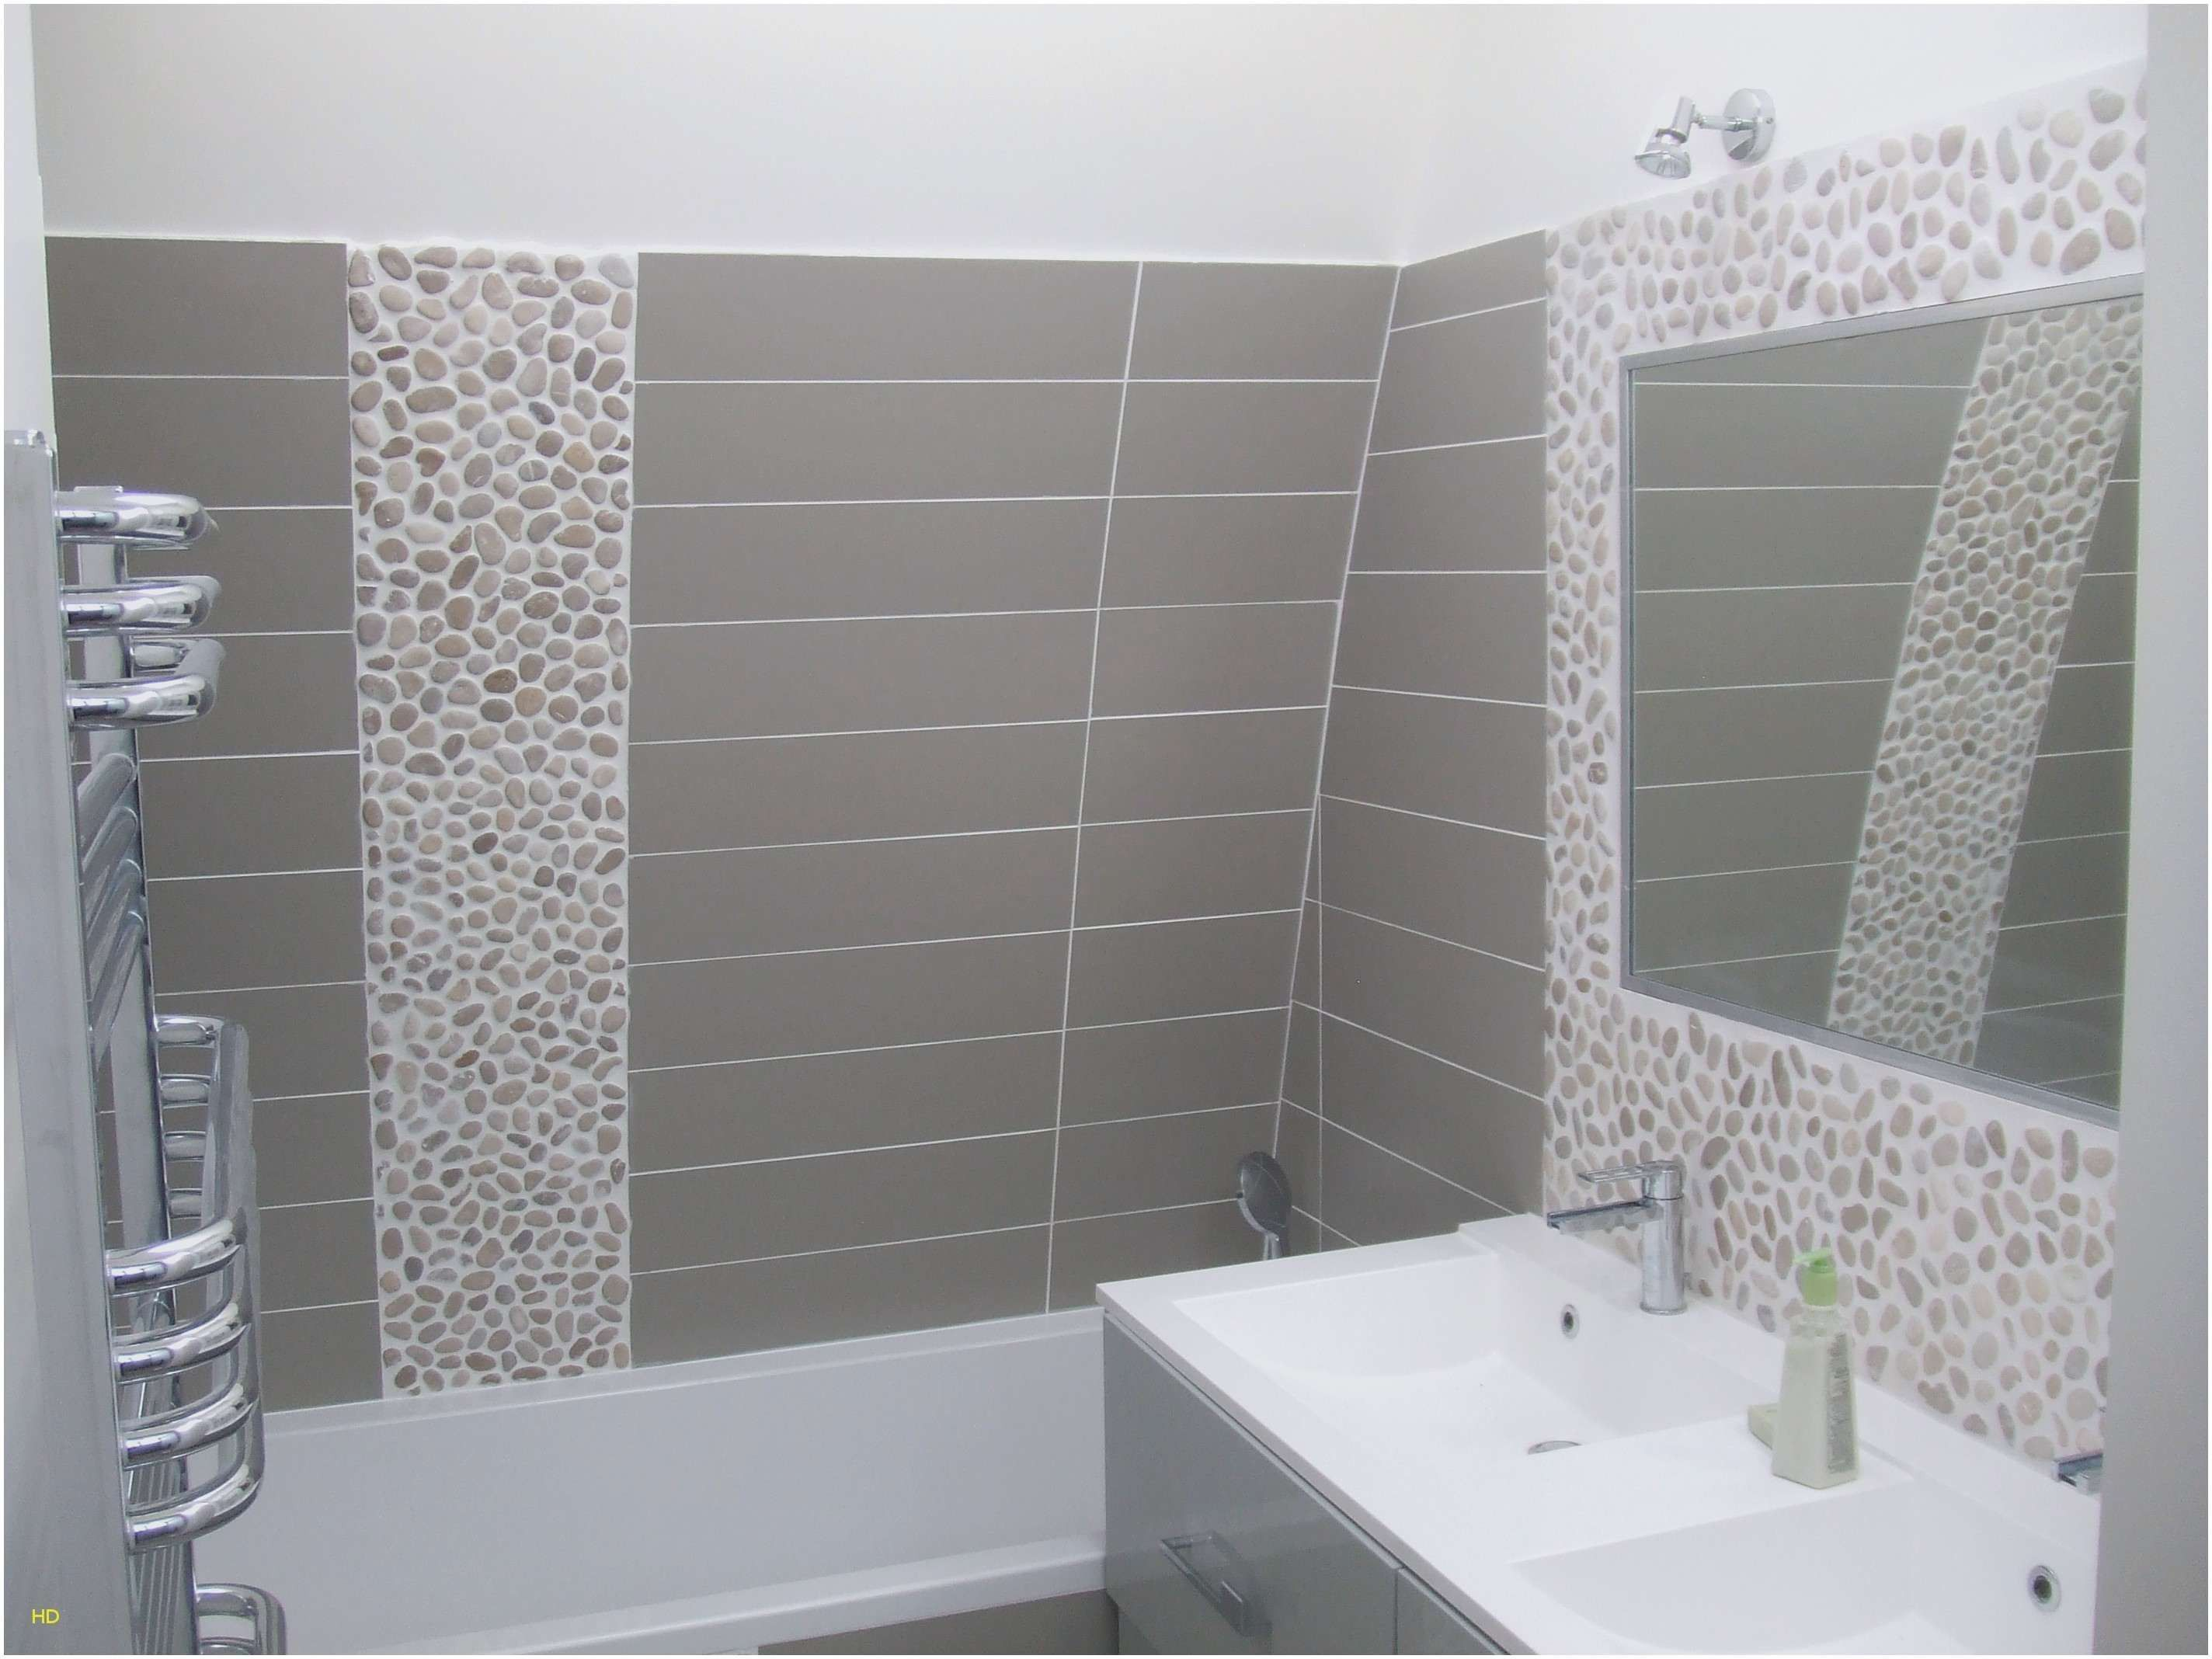 Faire Un Joint De Baignoire En Silicone De Nos Designers Favoris Small Bathroom Remodel Small Bathroom Bathrooms Remodel